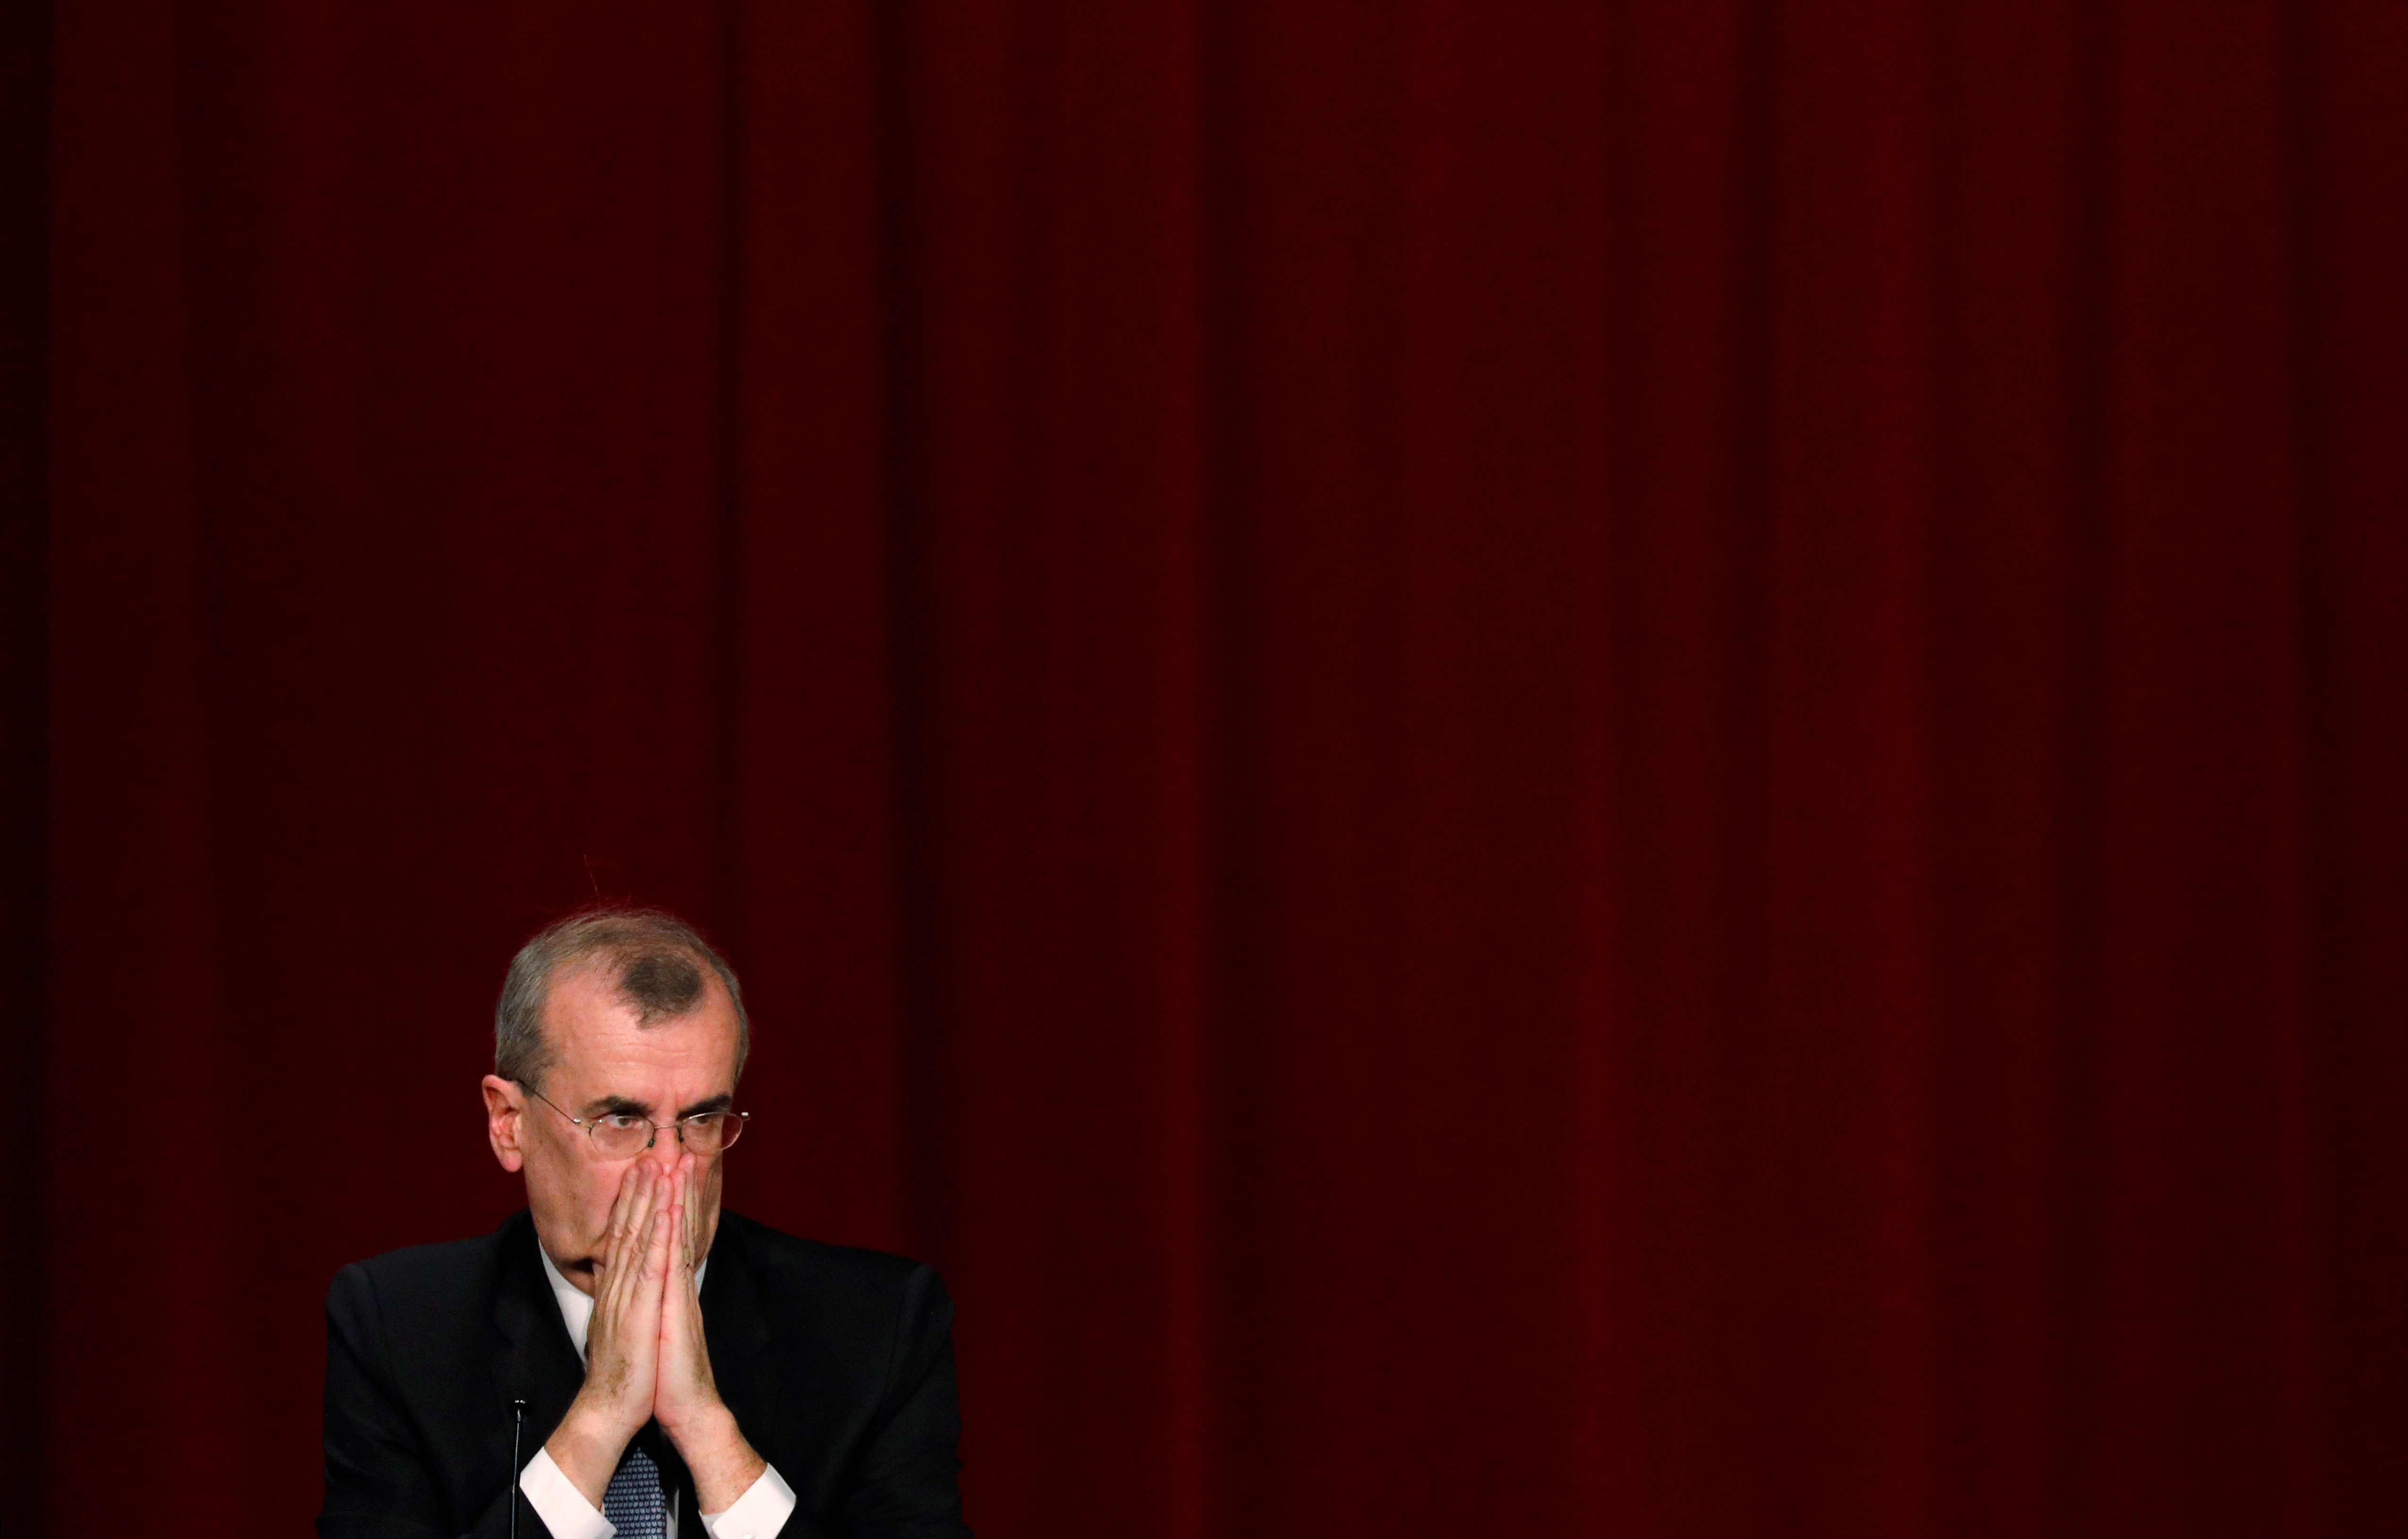 Brexit turmoil has quietened other countries' calls to quit EU: ECB's Villeroy